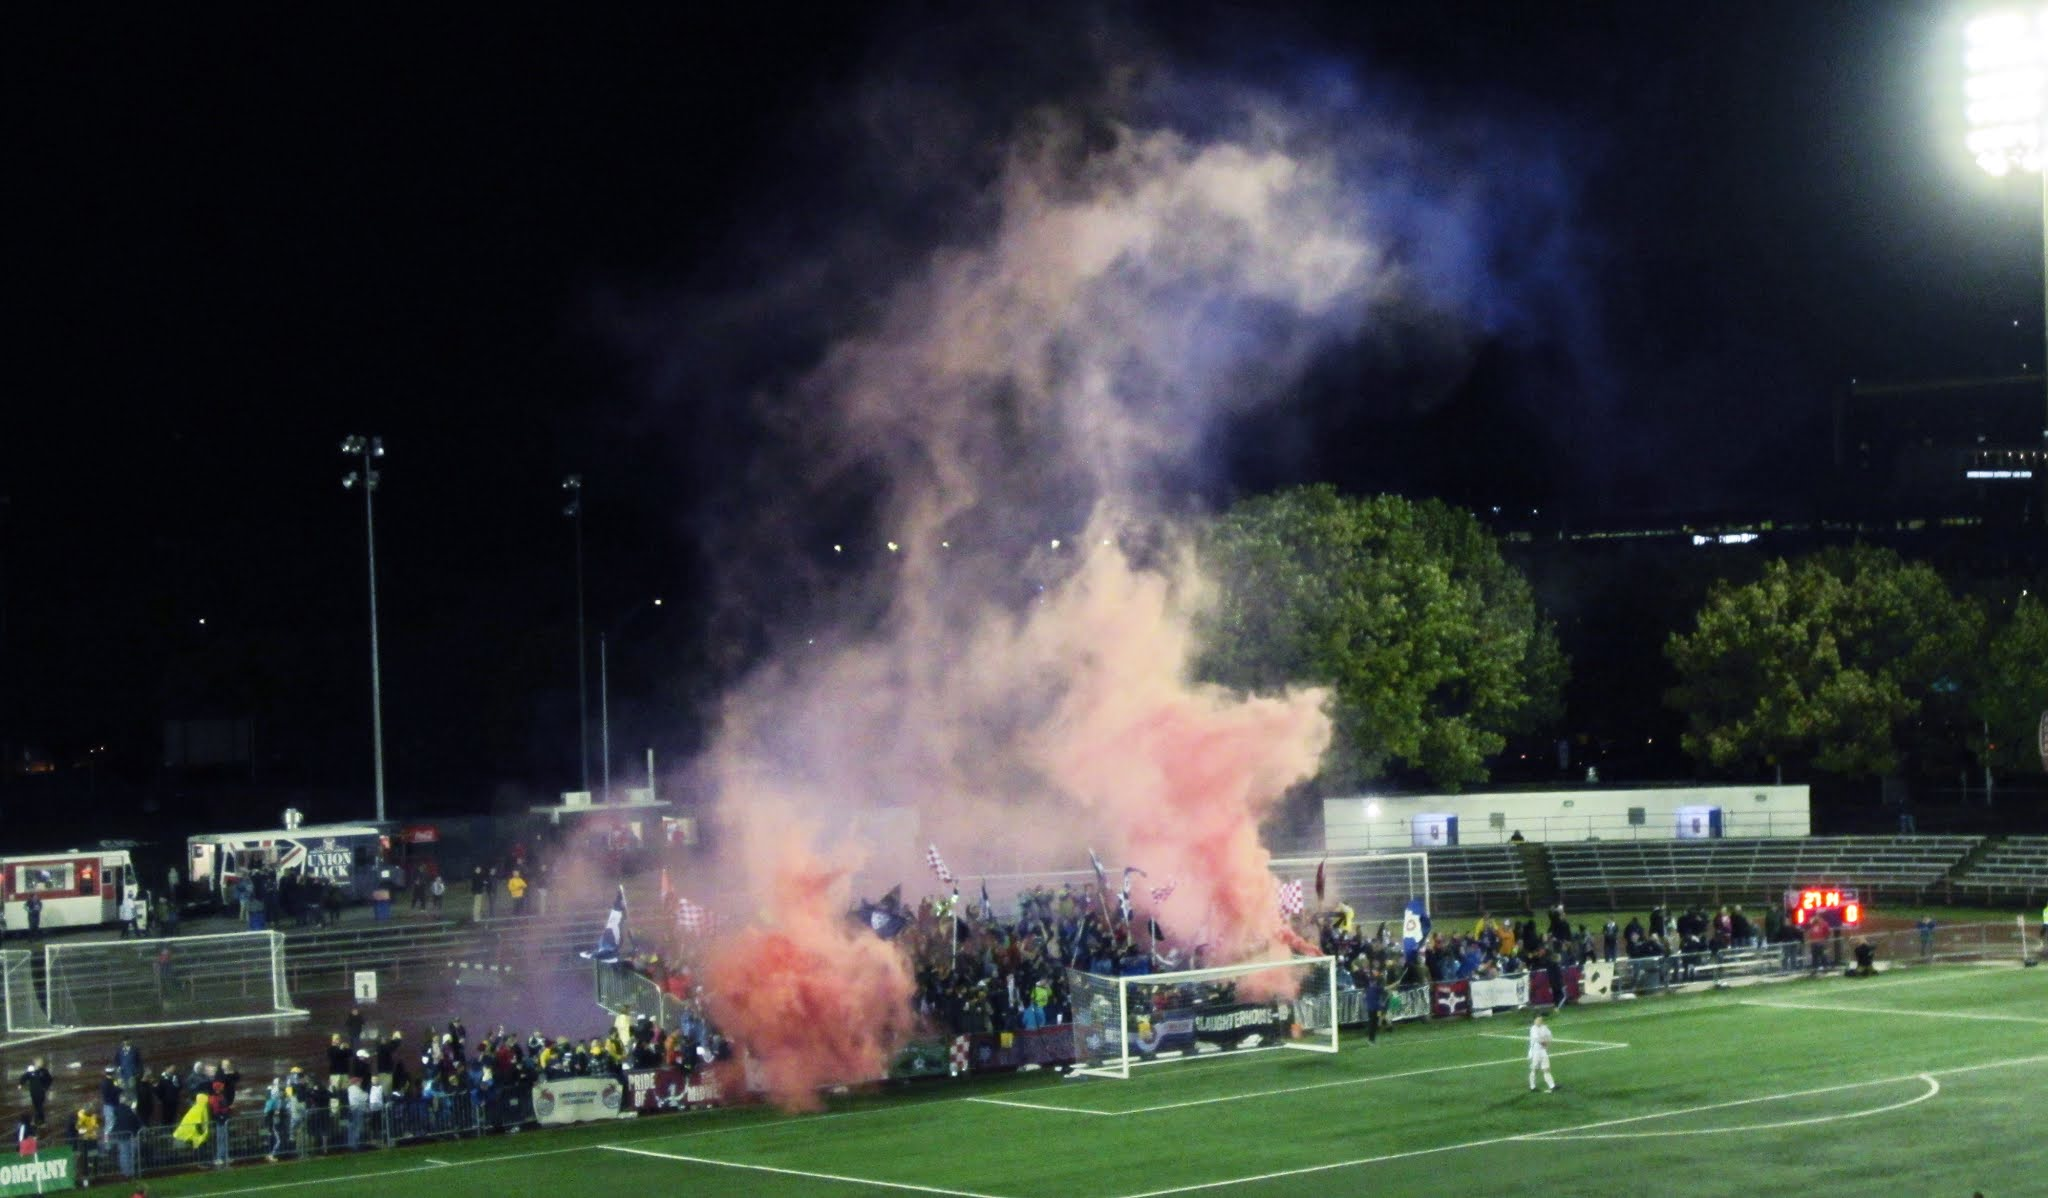 A flare goes off in the Brickyard Battalion section inside Carroll Stadium, IUPUI